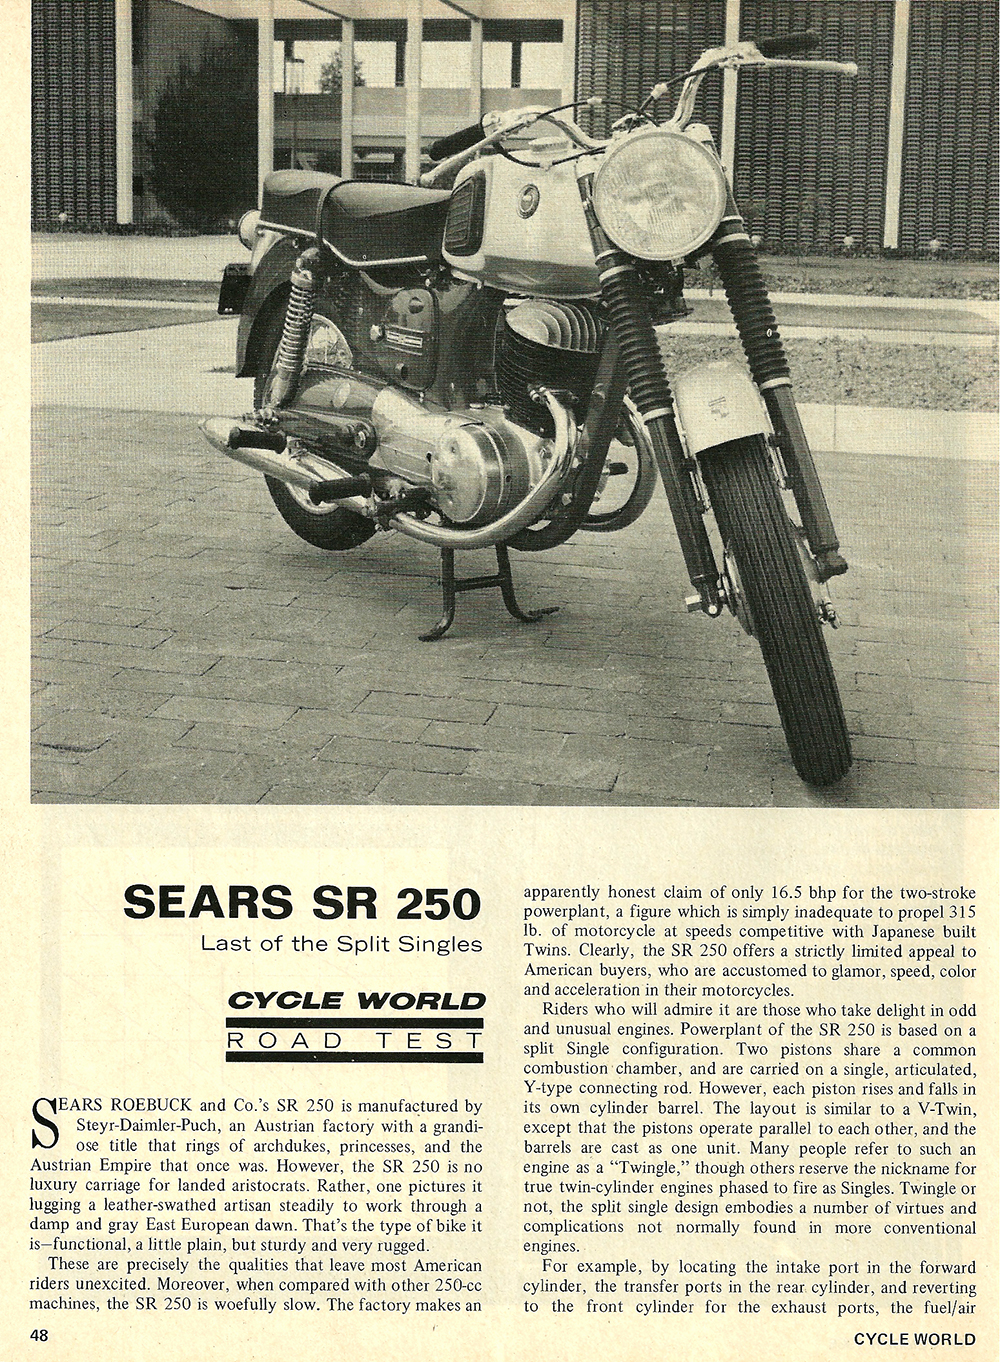 1968 Sears SR 250 road test 01.jpg